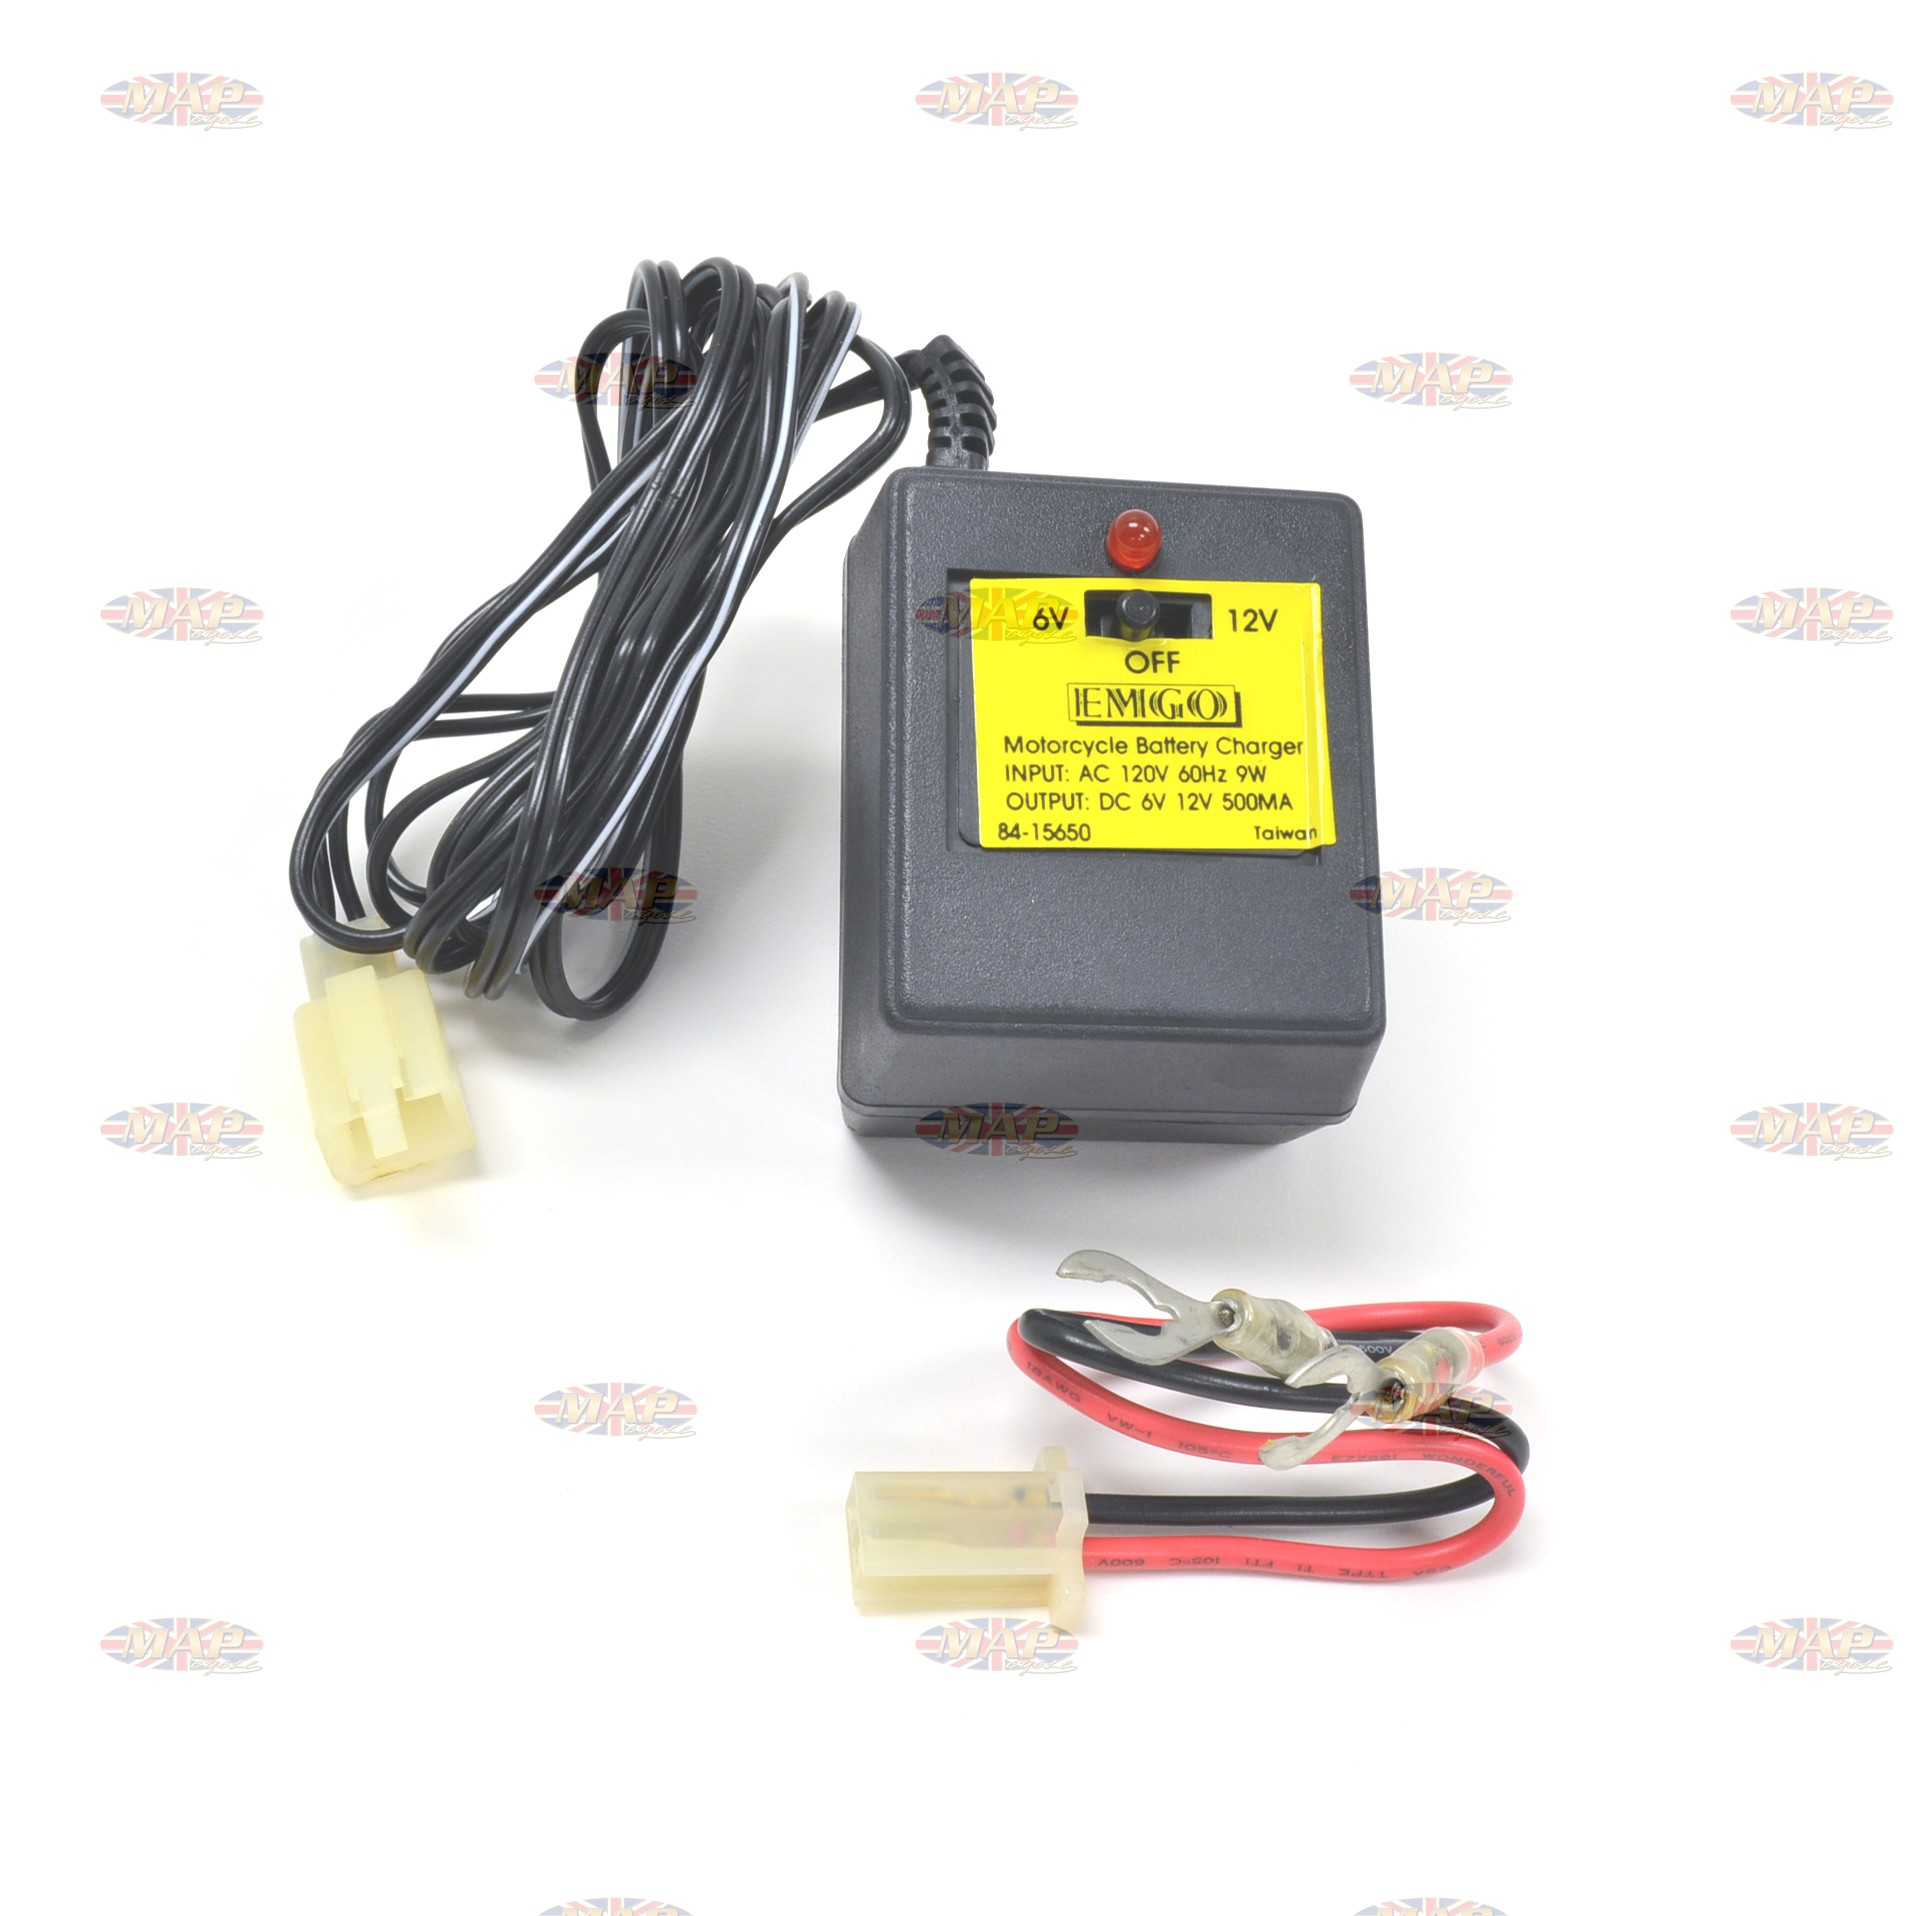 Motorcycle Compact Battery Charger Maintainer With Detachable Leads MAP0995